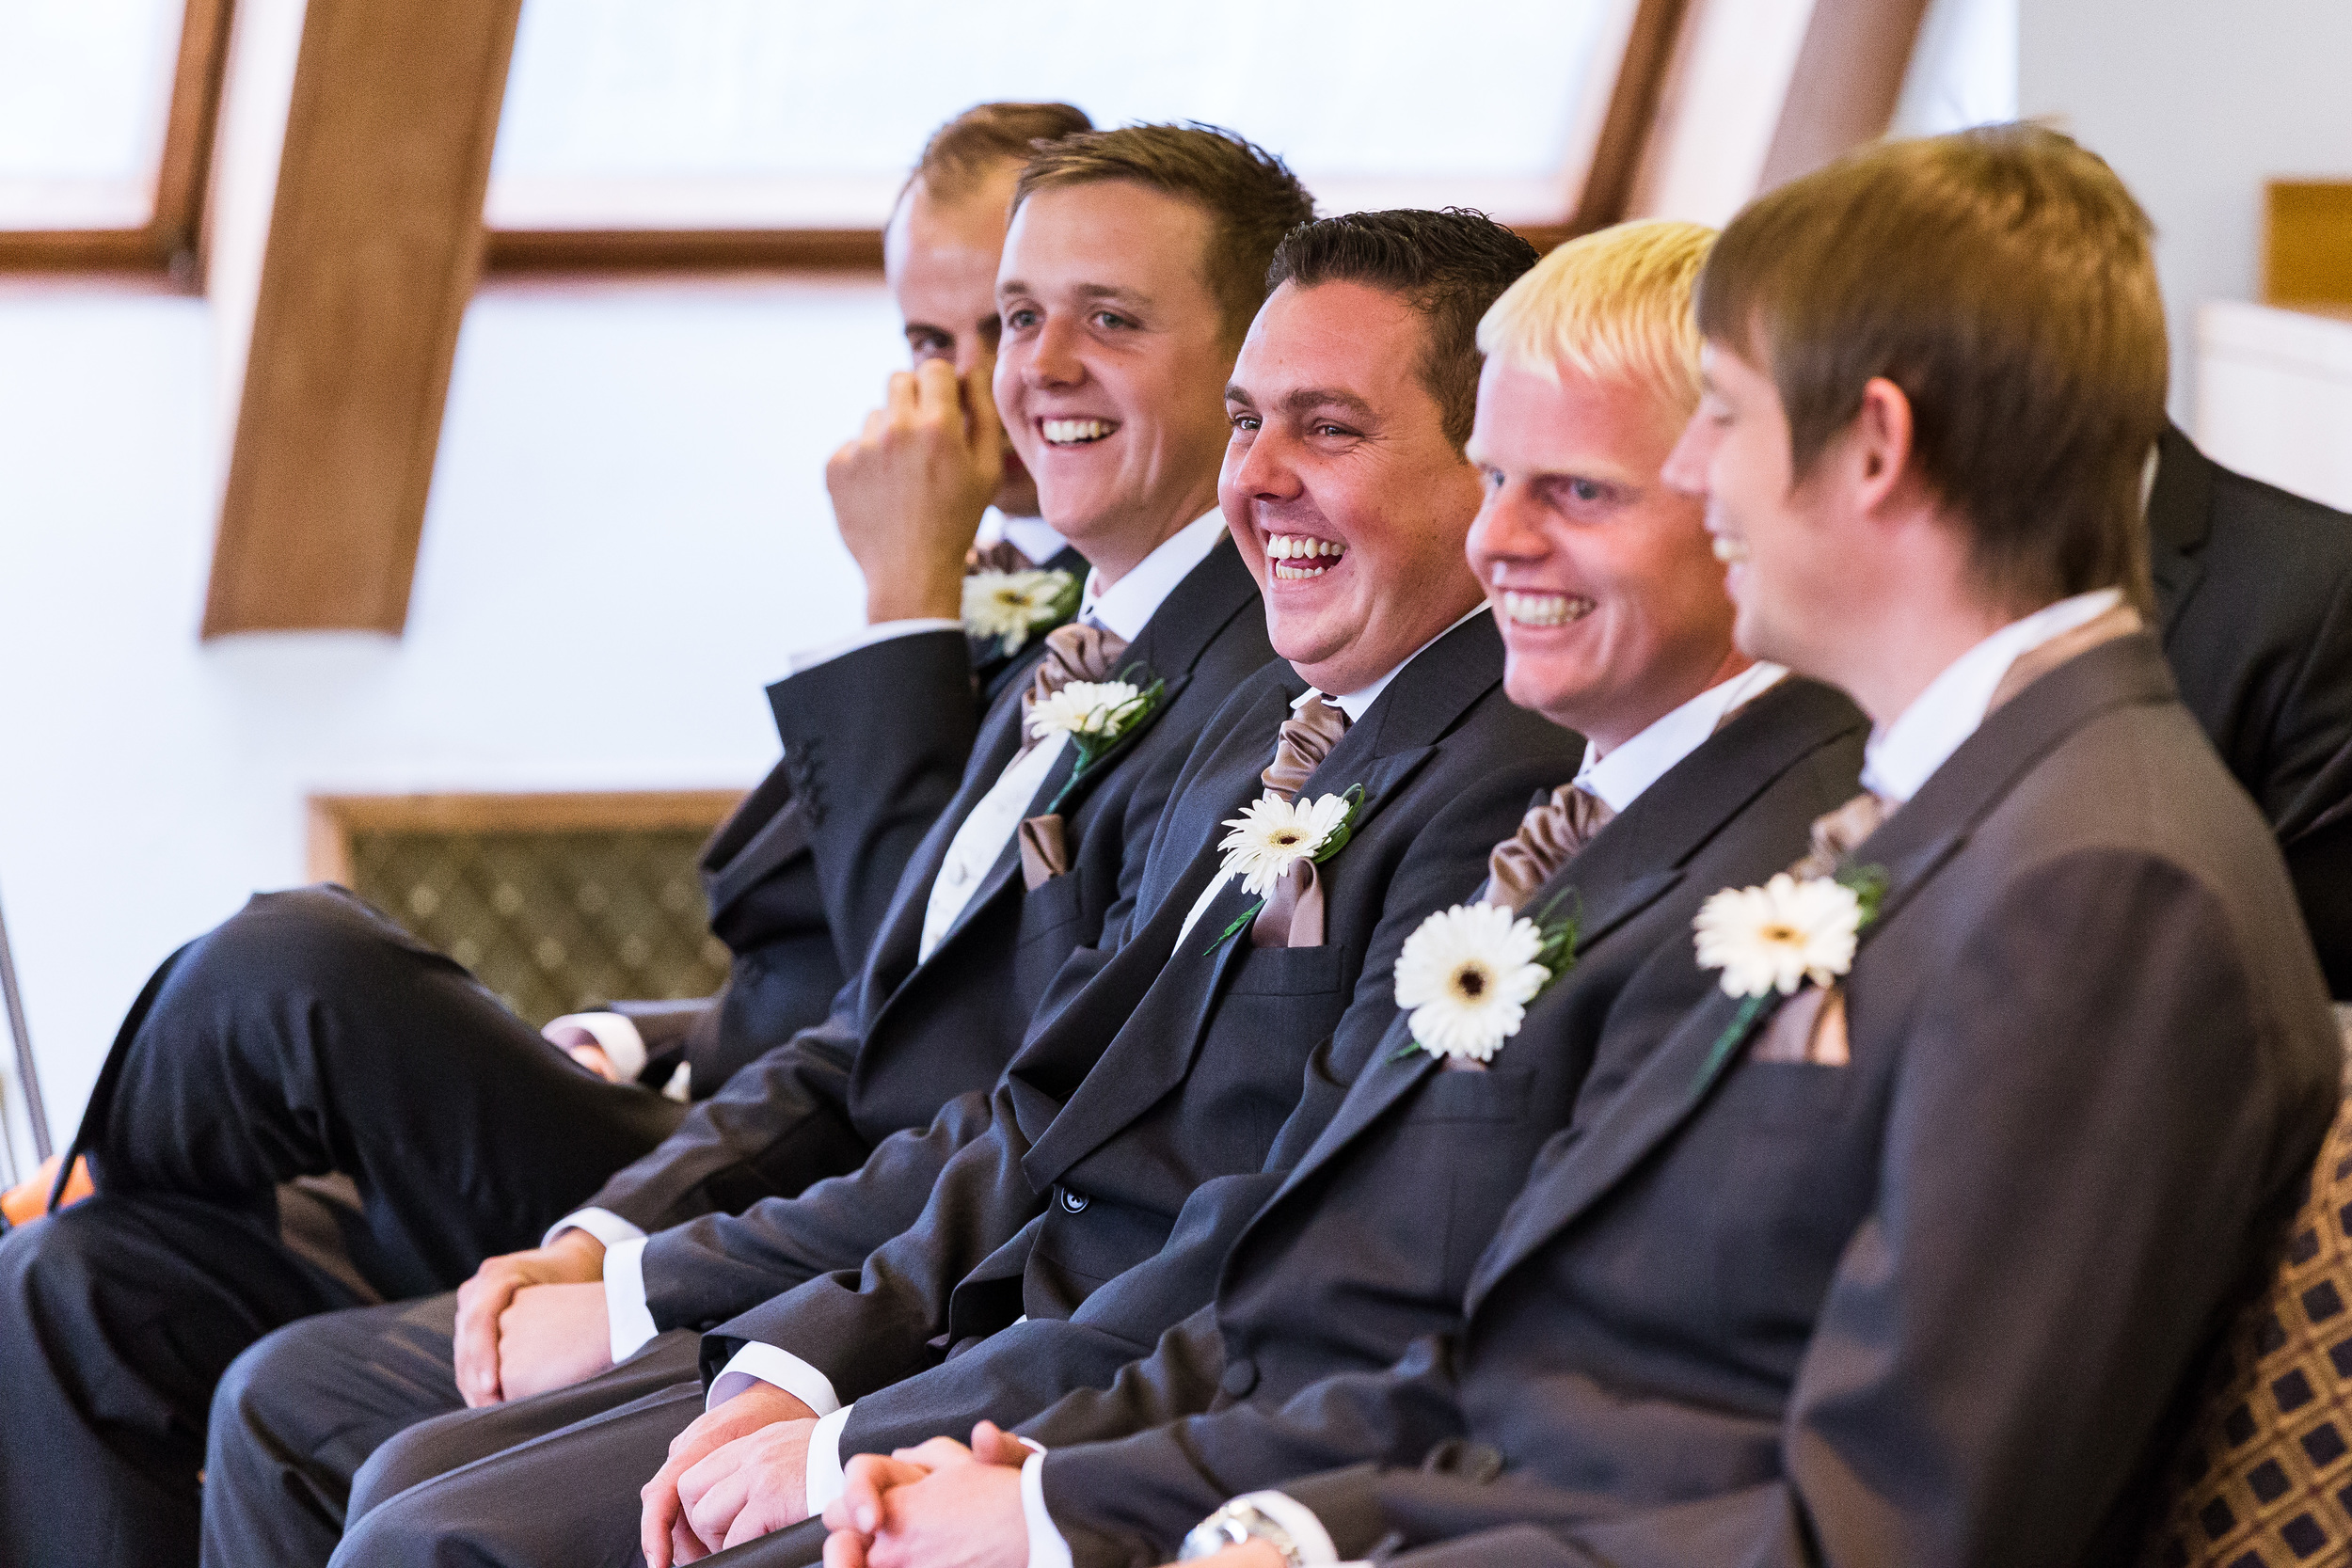 The groomsman's reaction to Marc's fumbling off words